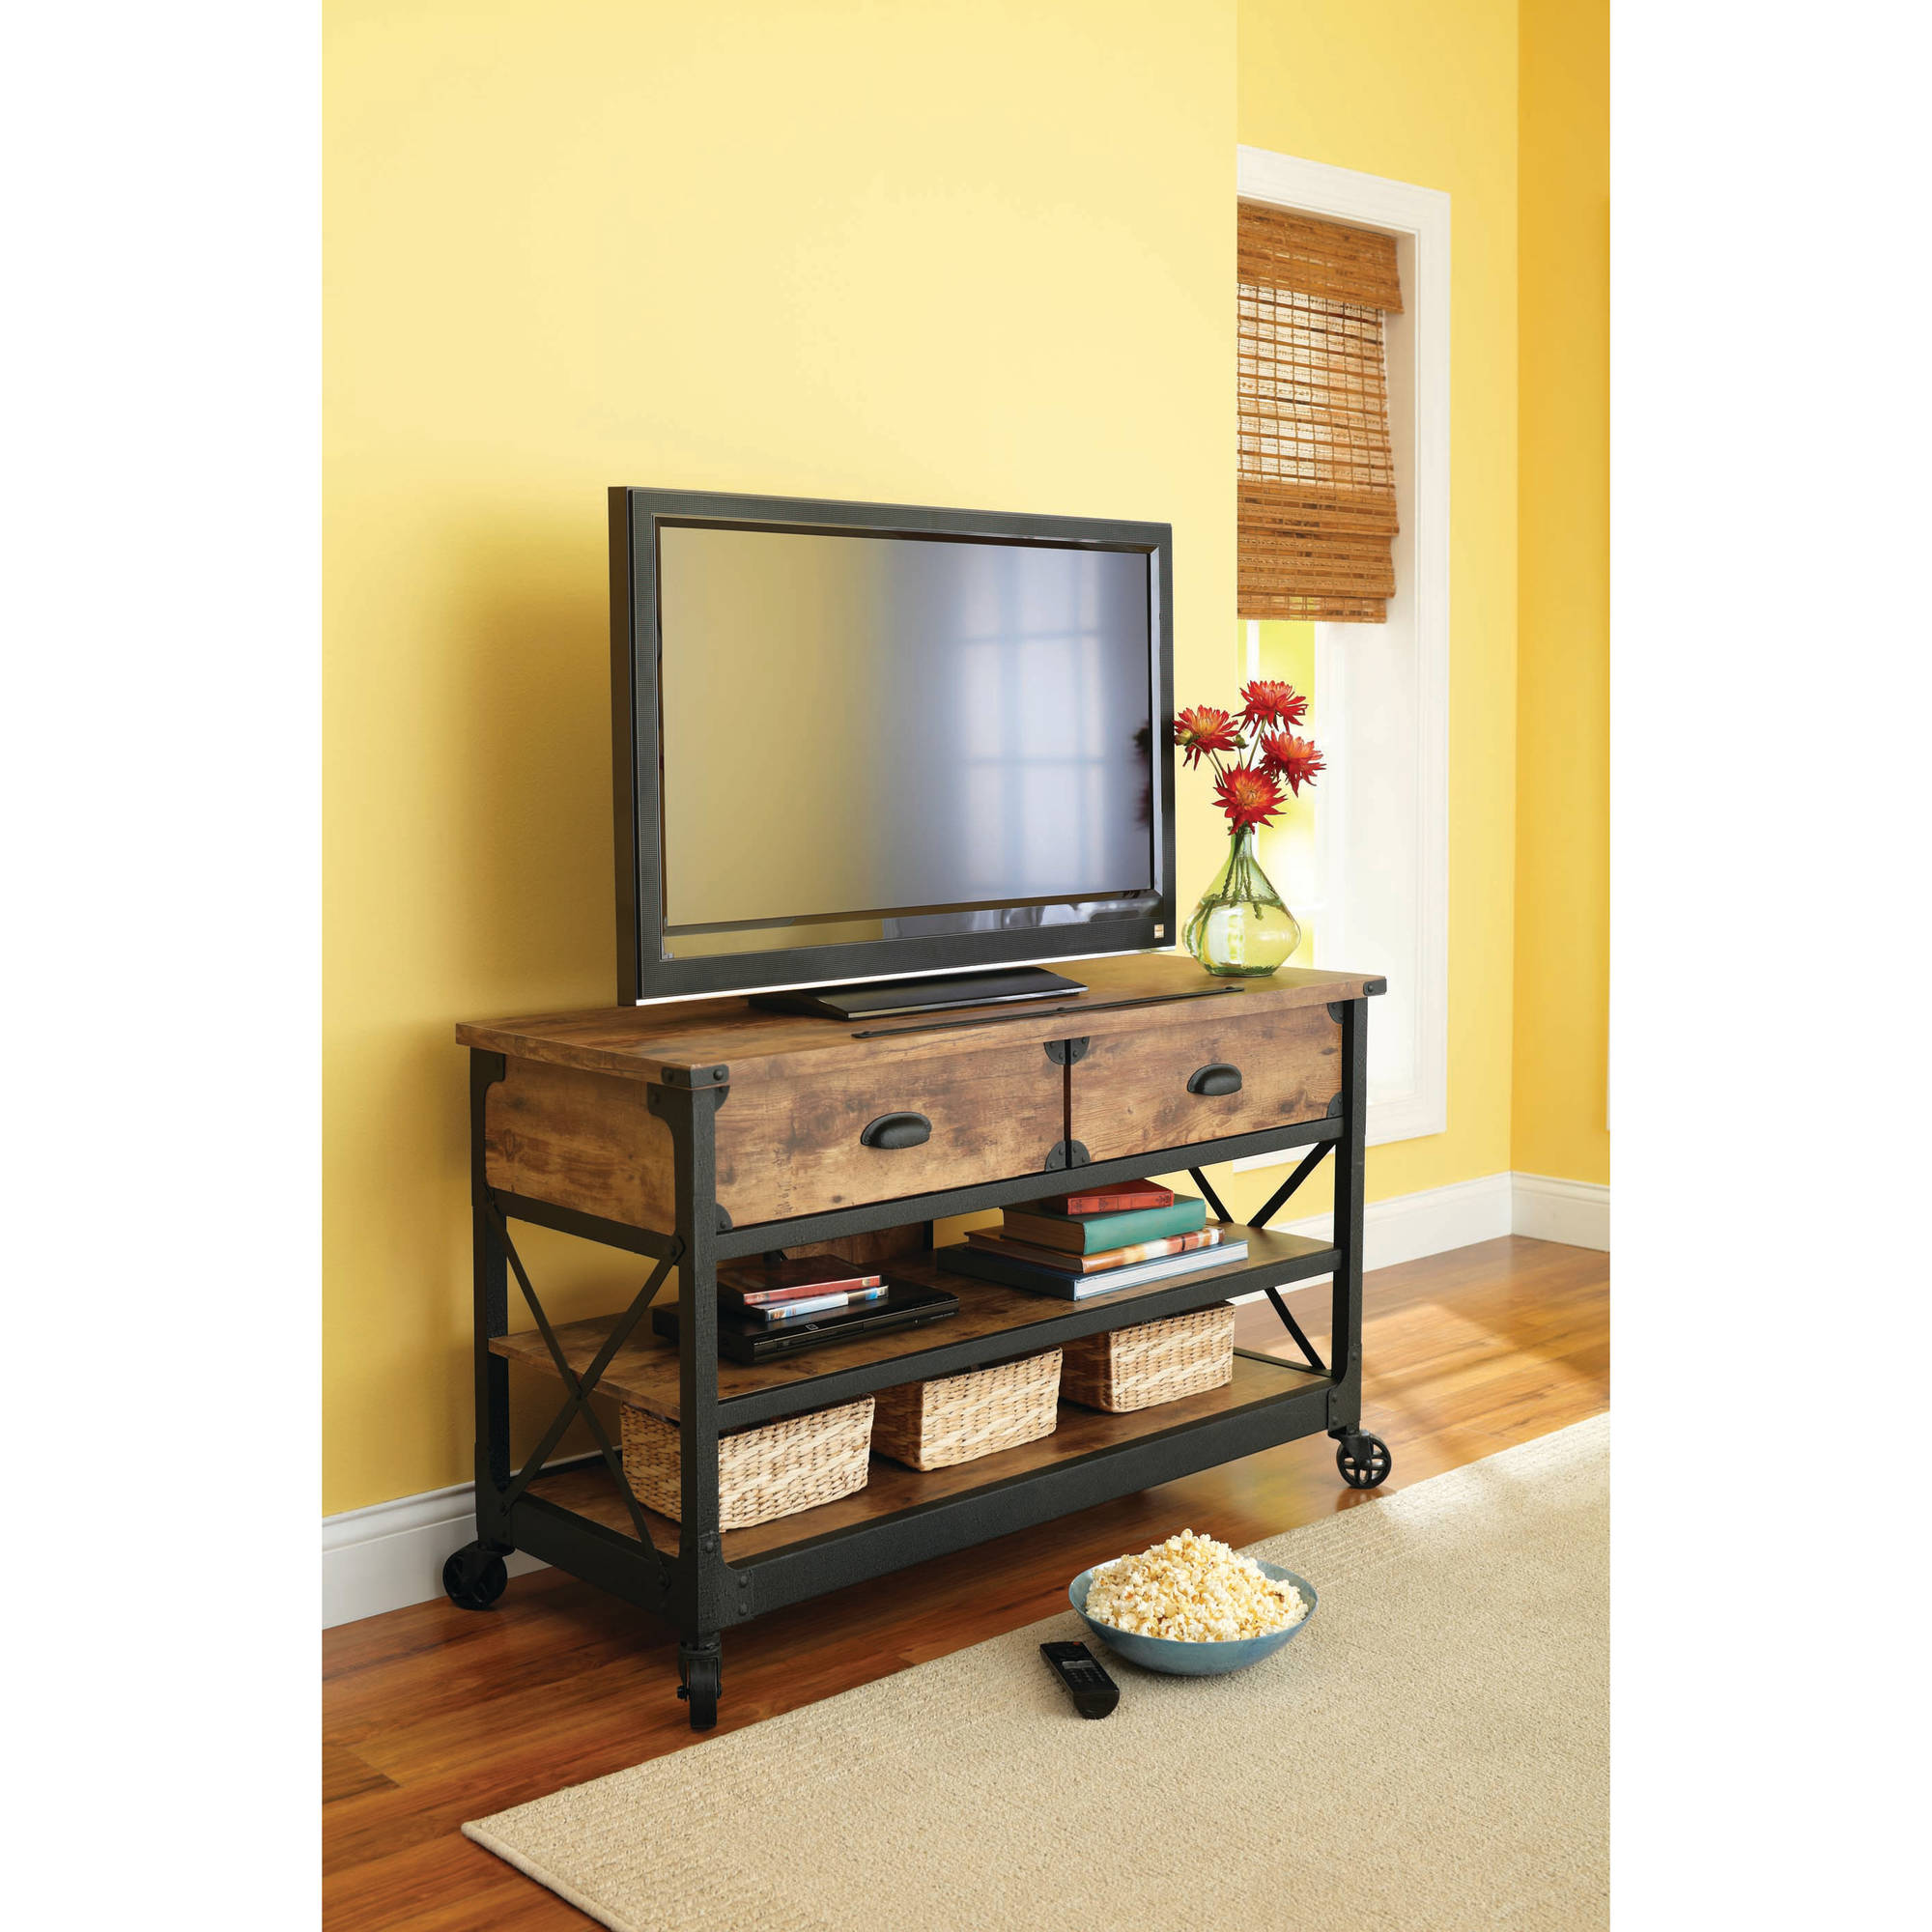 better homes and gardens rustic country living room set - walmart